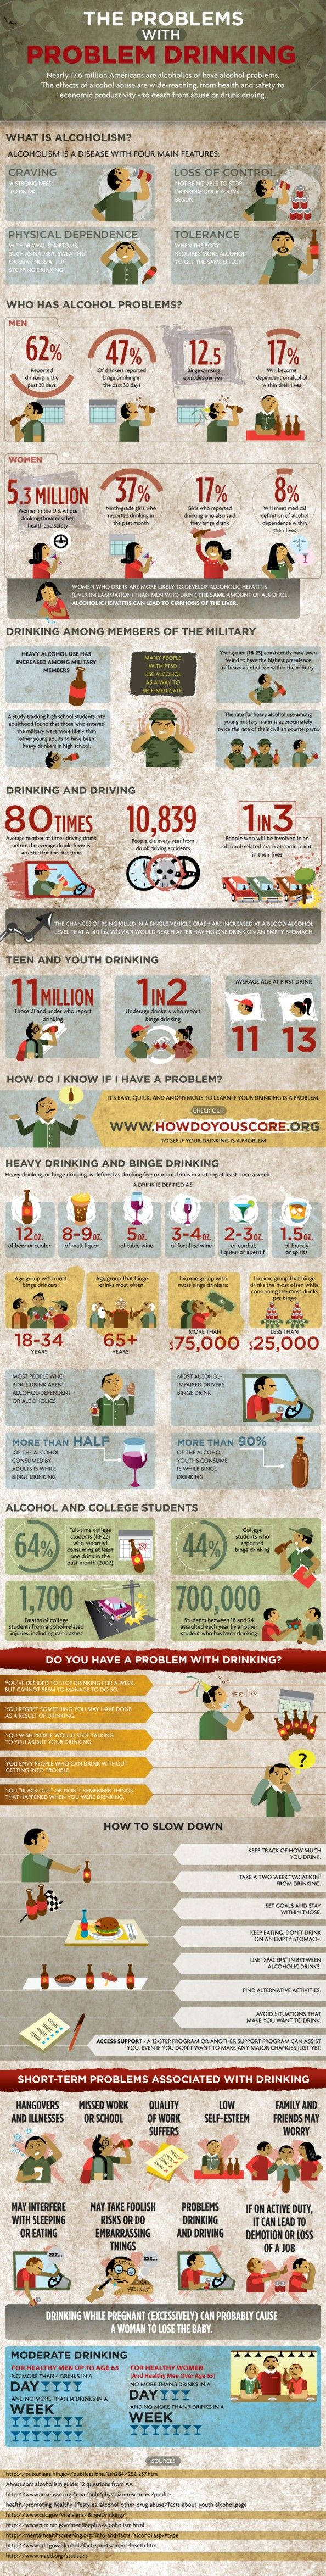 Am I an Alcoholic? – Alcohol Abuse Facts | Screening for Mental Health Infographic